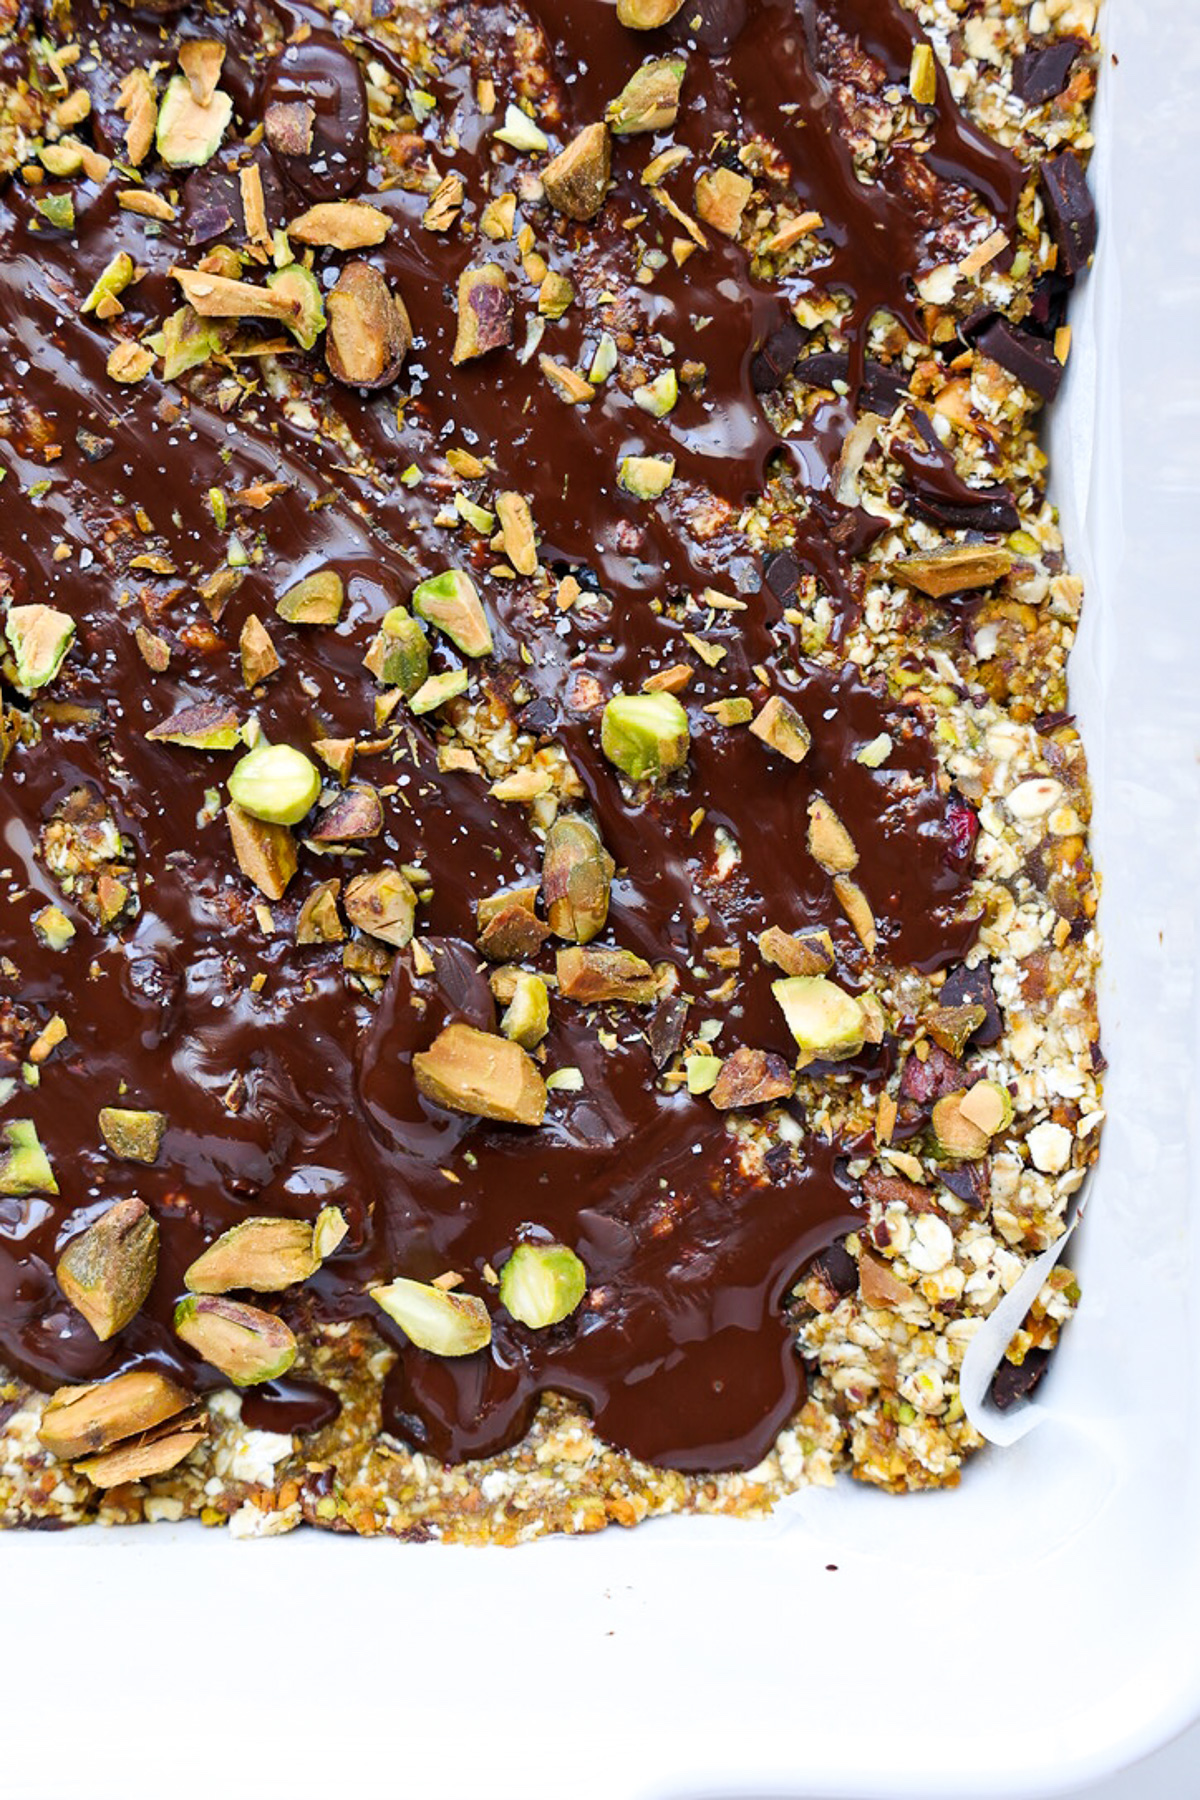 Chocolate covered no bake pistachio snack bars in white square container.